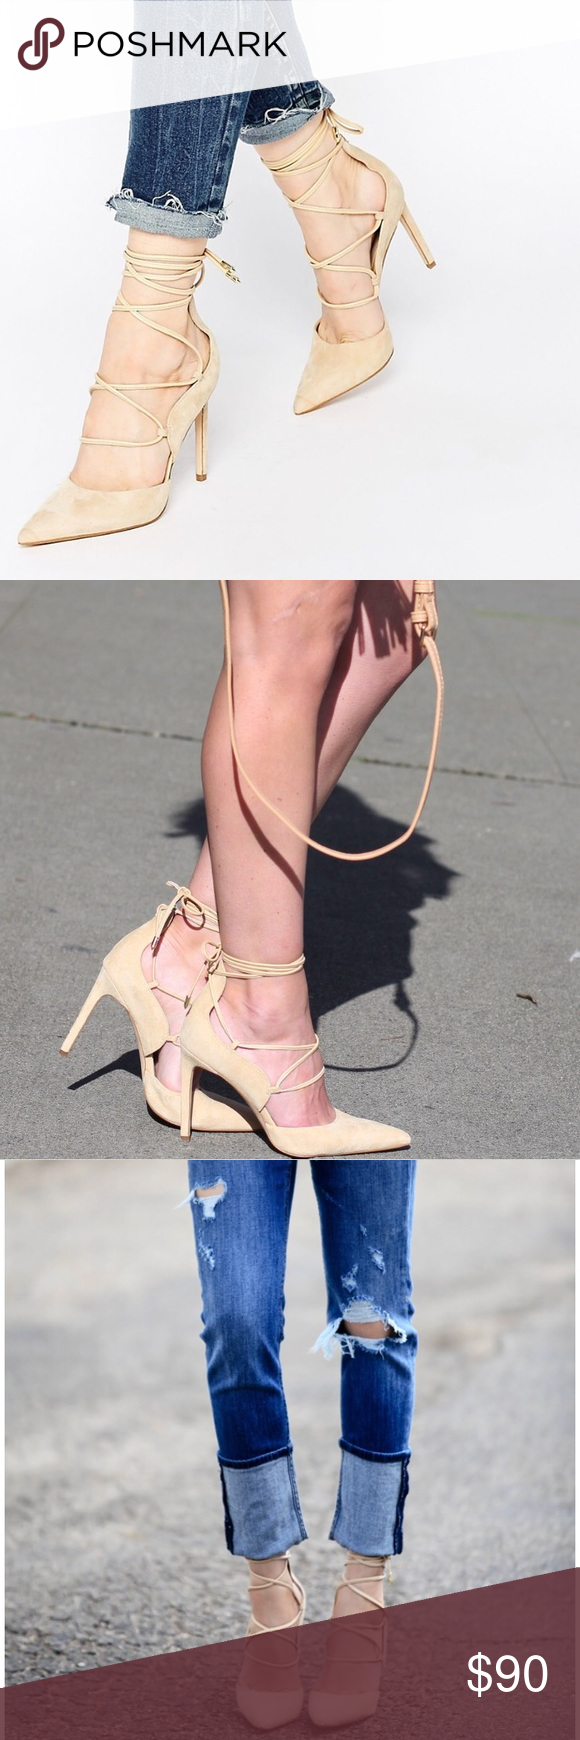 "6e80e7af45d3 SAM EDELMAN DAYNA LACE UP POINTED TOE NUDE PUMPS Worn twice. 4""  slim stiletto heel. Genuine leather suede. 🔥 Sam Edelman Shoes Heels"